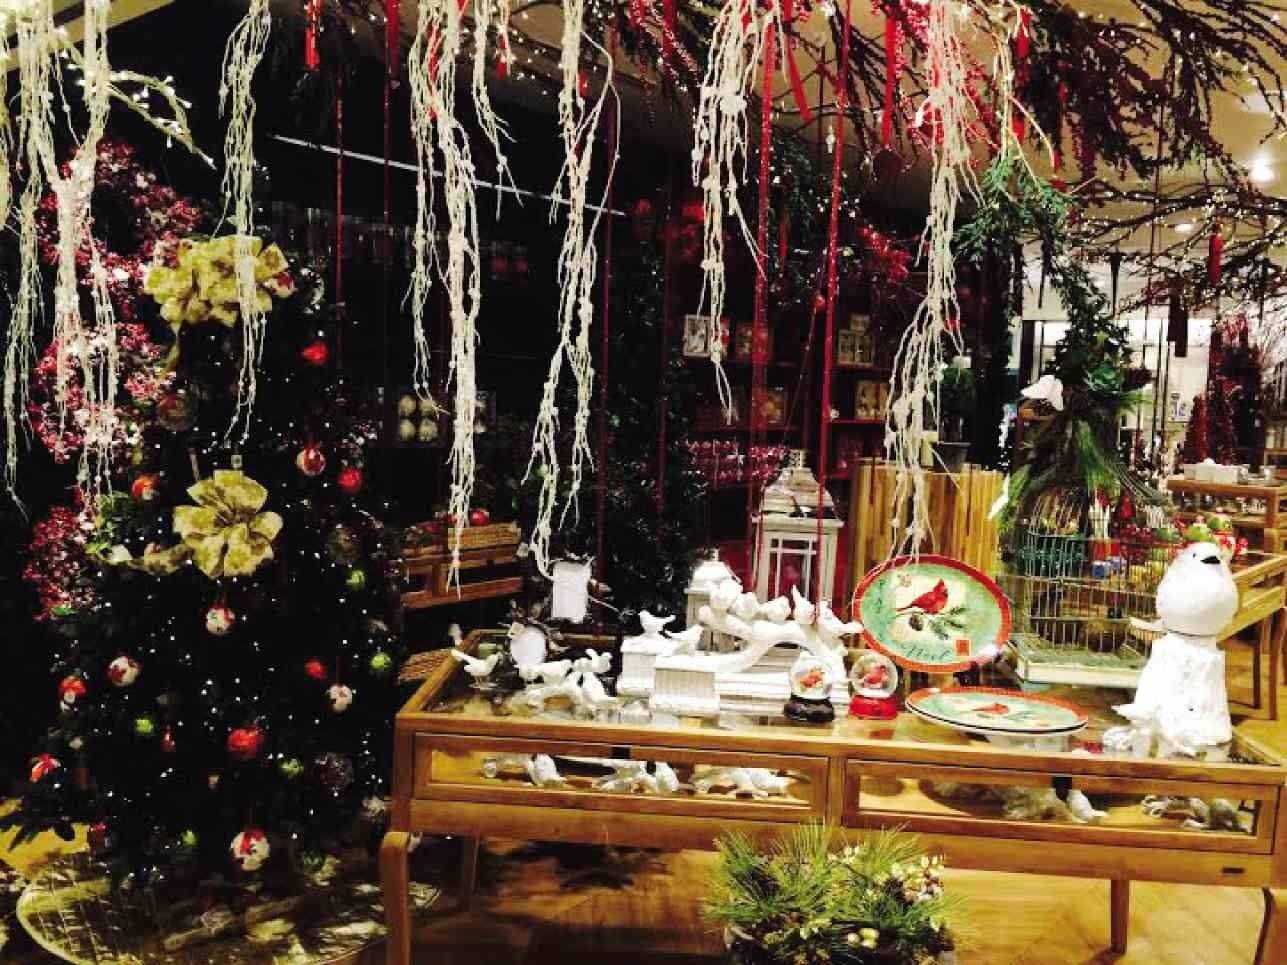 Creative Settings Help Bring Season Spirit